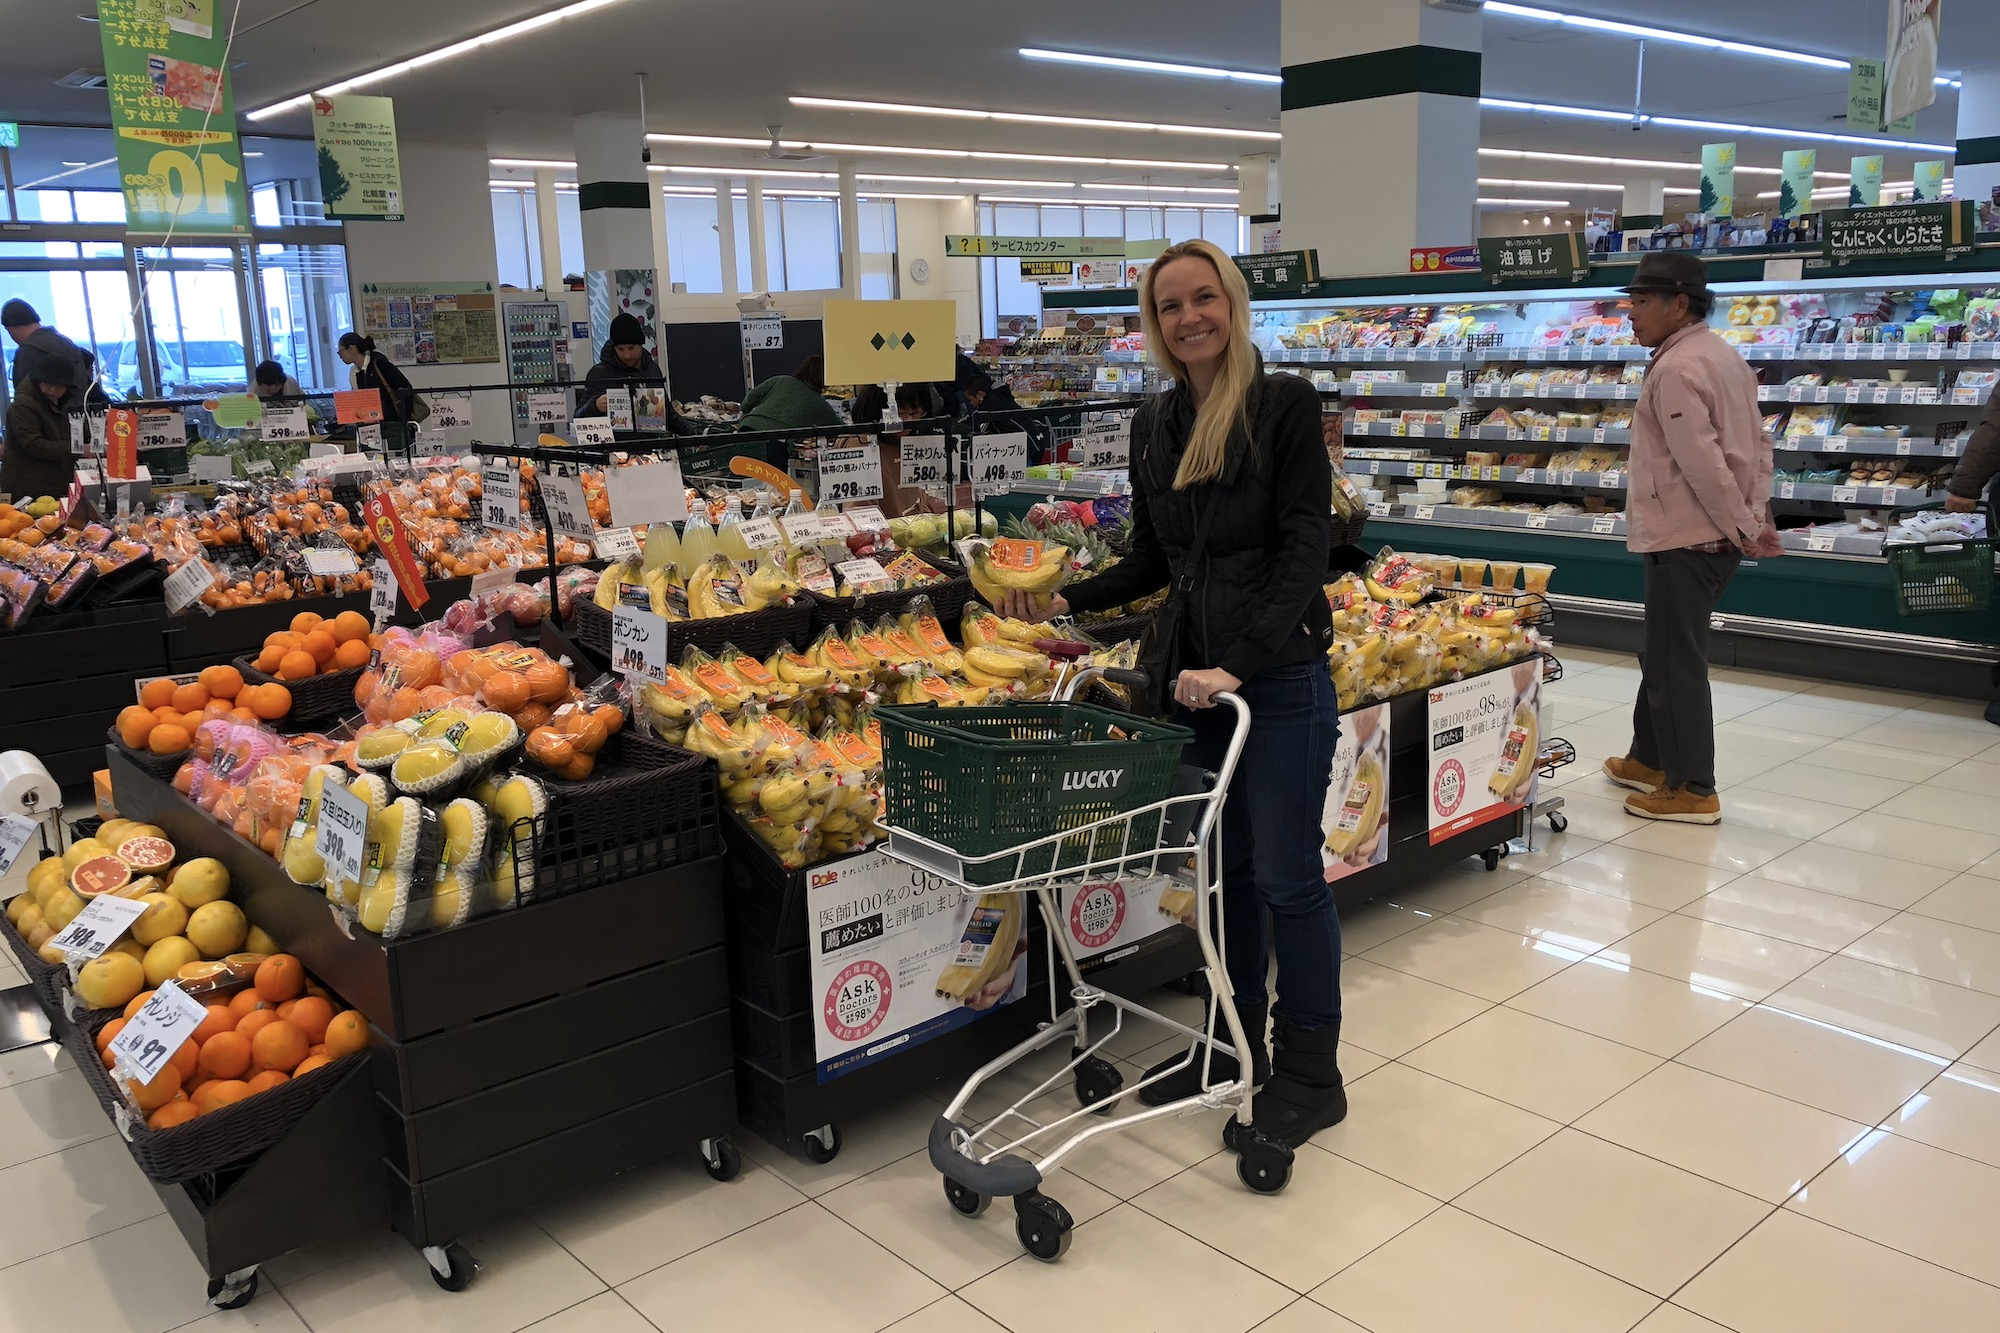 Stocking up on Groceries and Drinks in Niseko, Japan